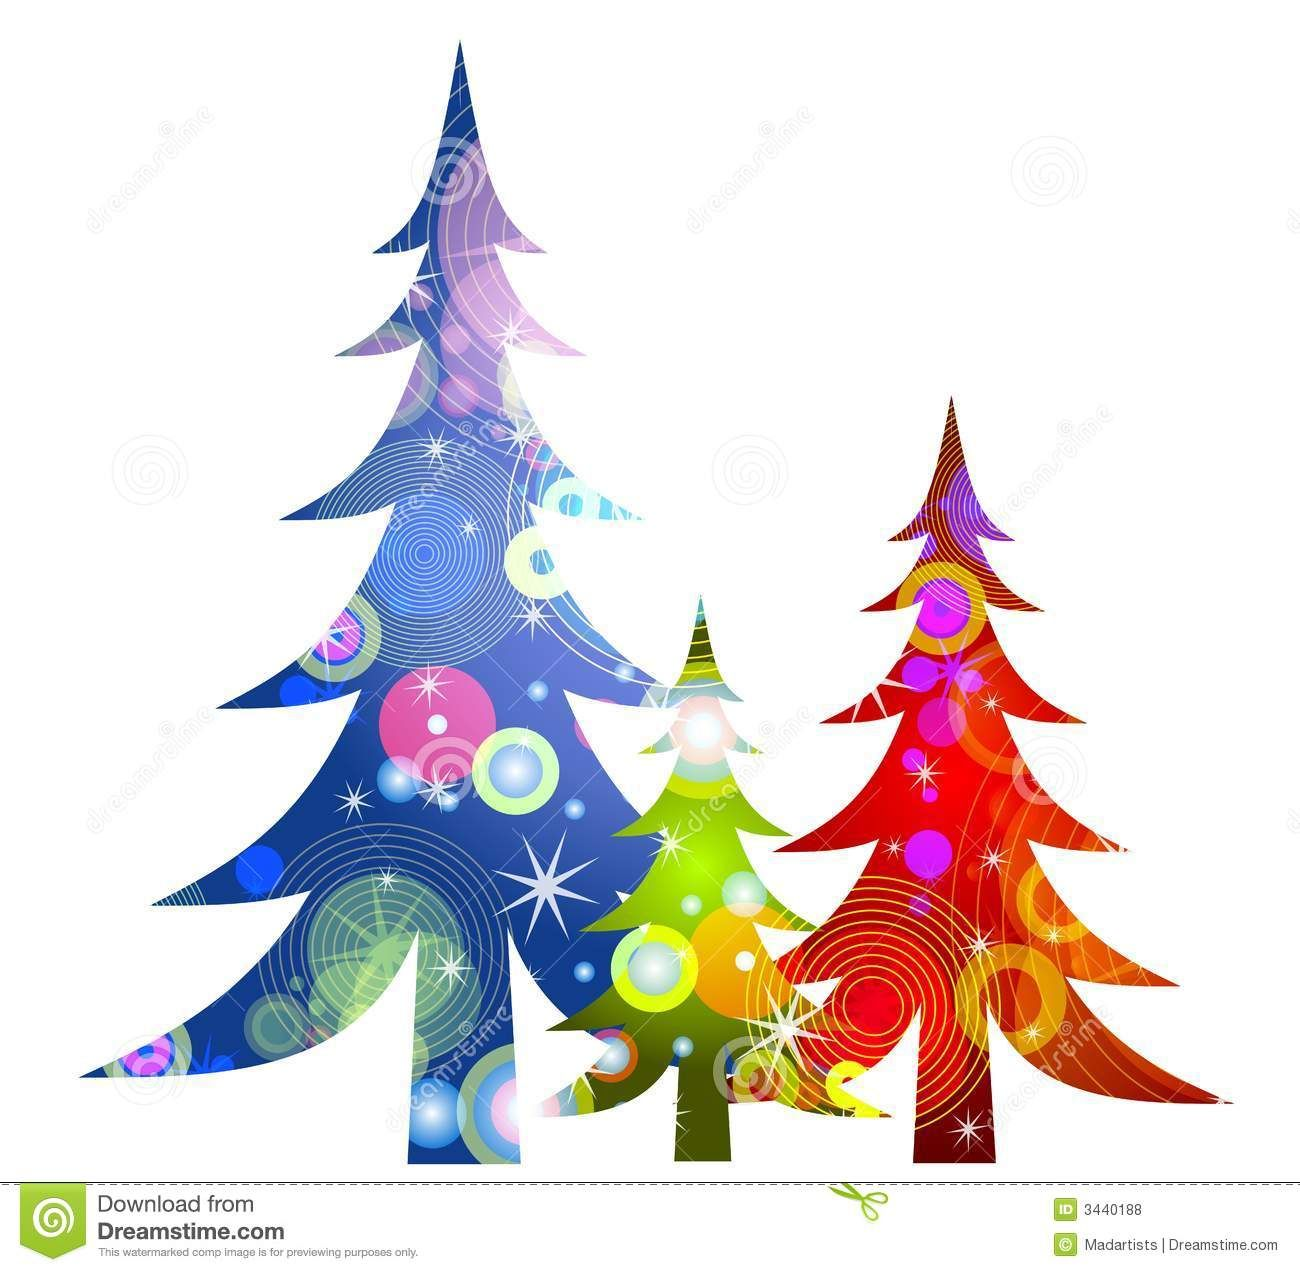 Retro Christmas Trees Clip Art Royalty Free Stock Photos.